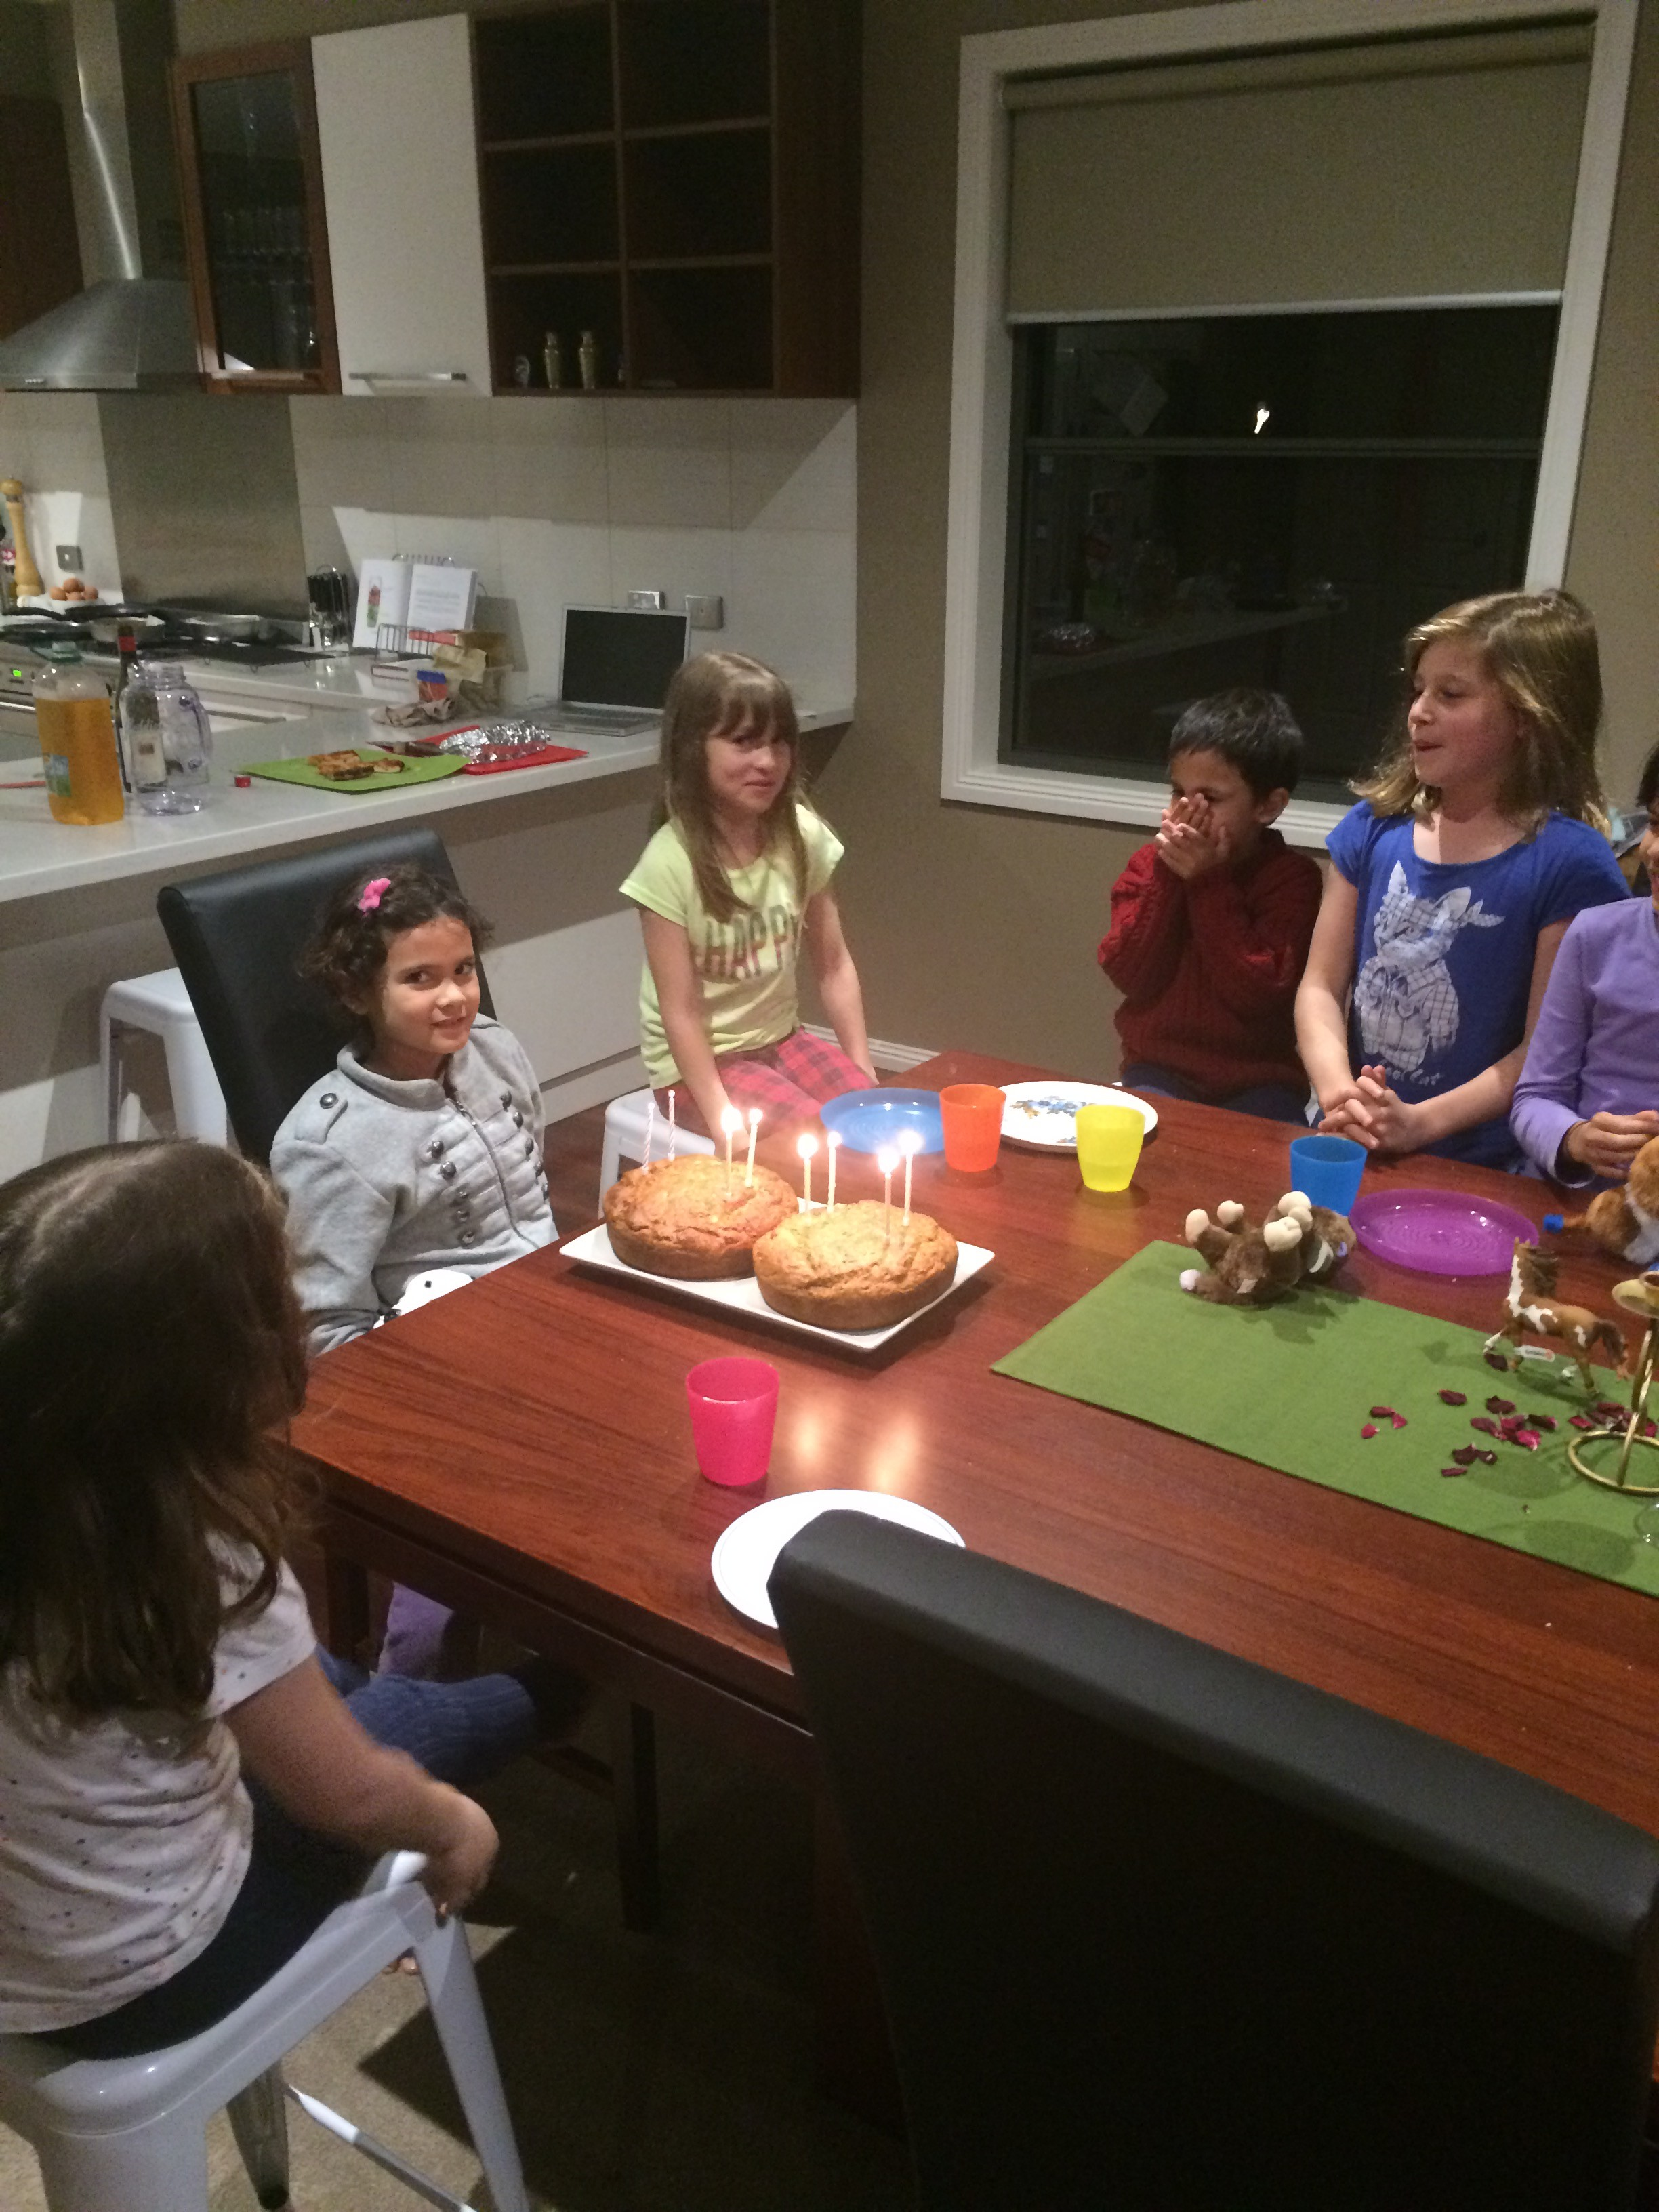 Mustering enough energy to blow out the candles.